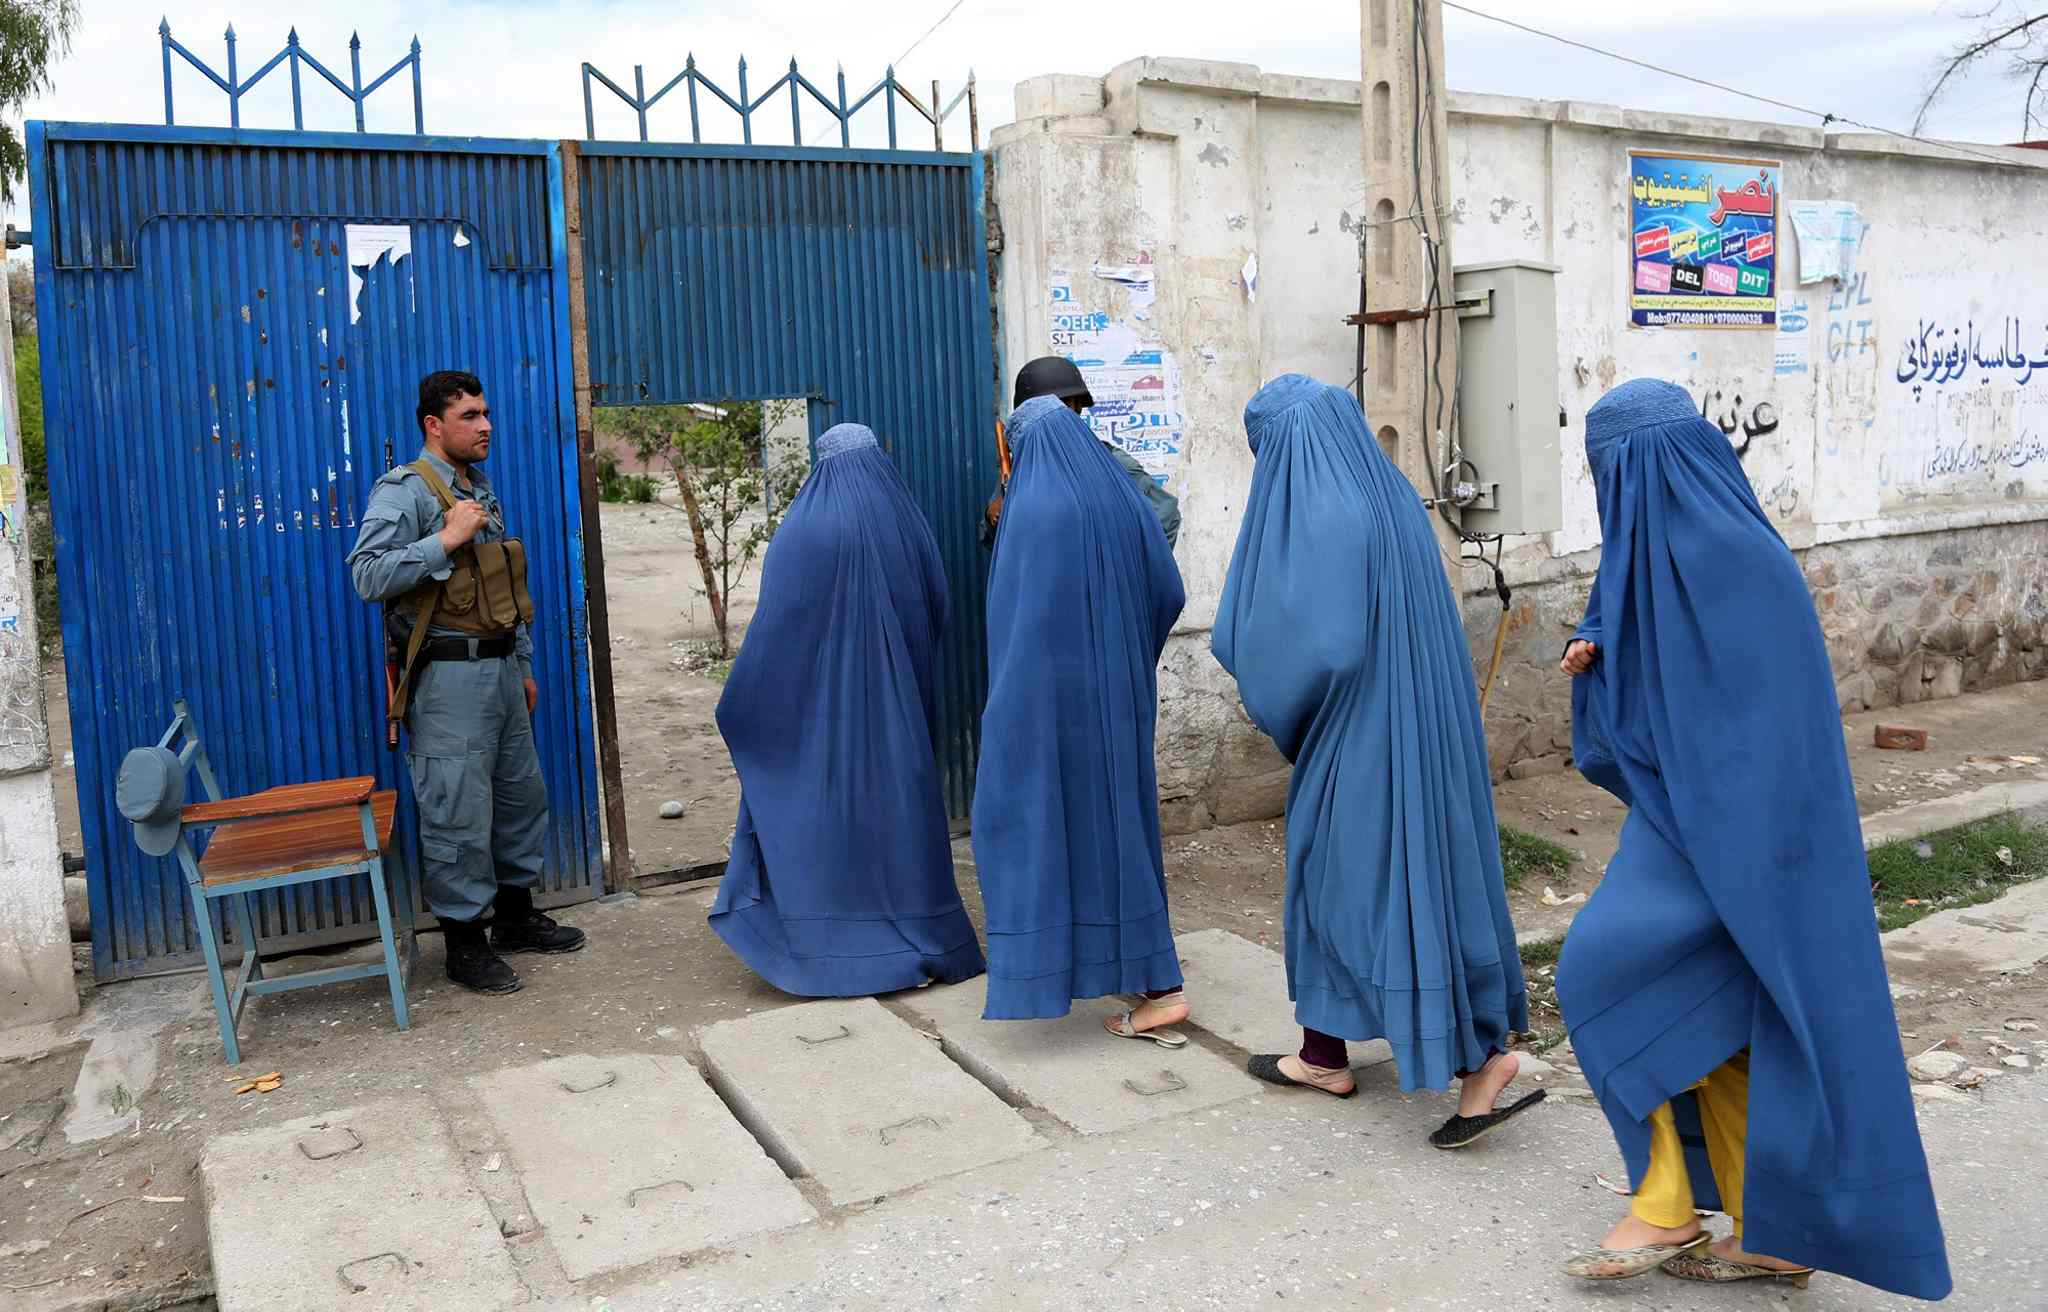 Afghan women enter a poling station to vote in Jalalabad, east of Kabul, Afghanistan, Saturday, April 5. Afghan voters lined up for blocks at polling stations nationwide on Saturday, defying a threat of violence by the Taliban.